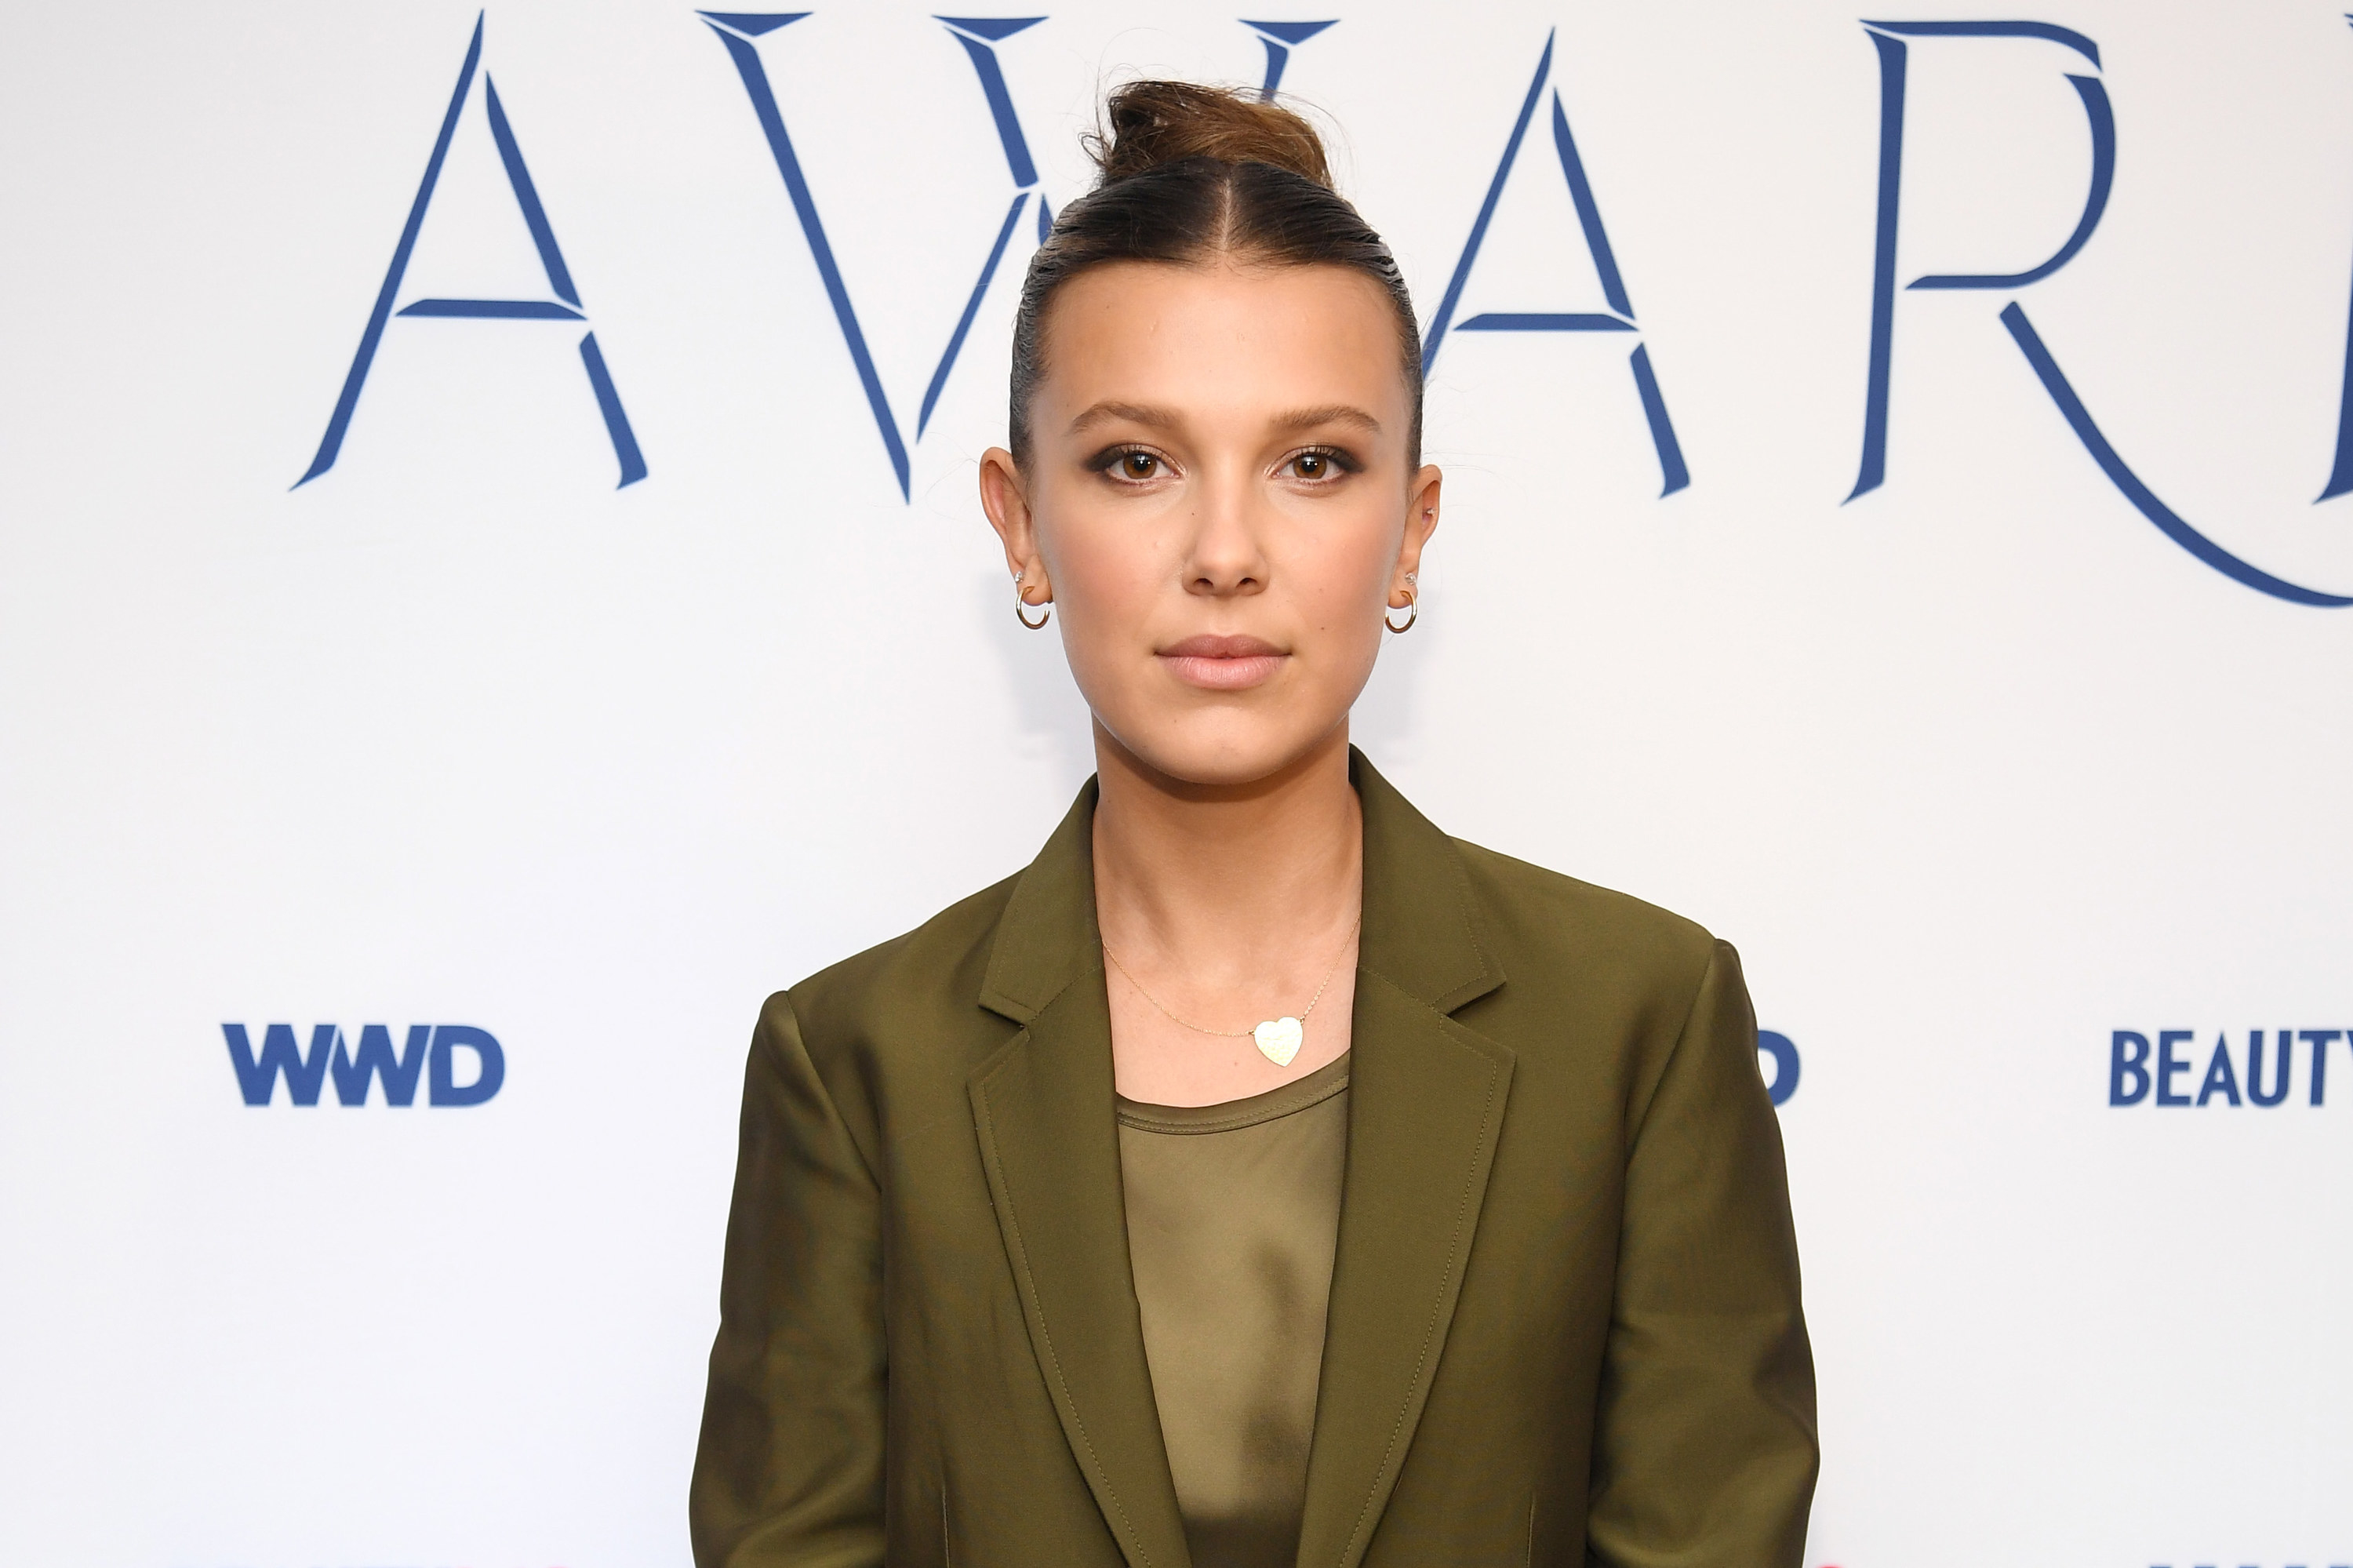 Millie Bobby Brown attends the 2019 WWD Beauty Inc Awards at The Rainbow Room on December 11, 2019, in New York City